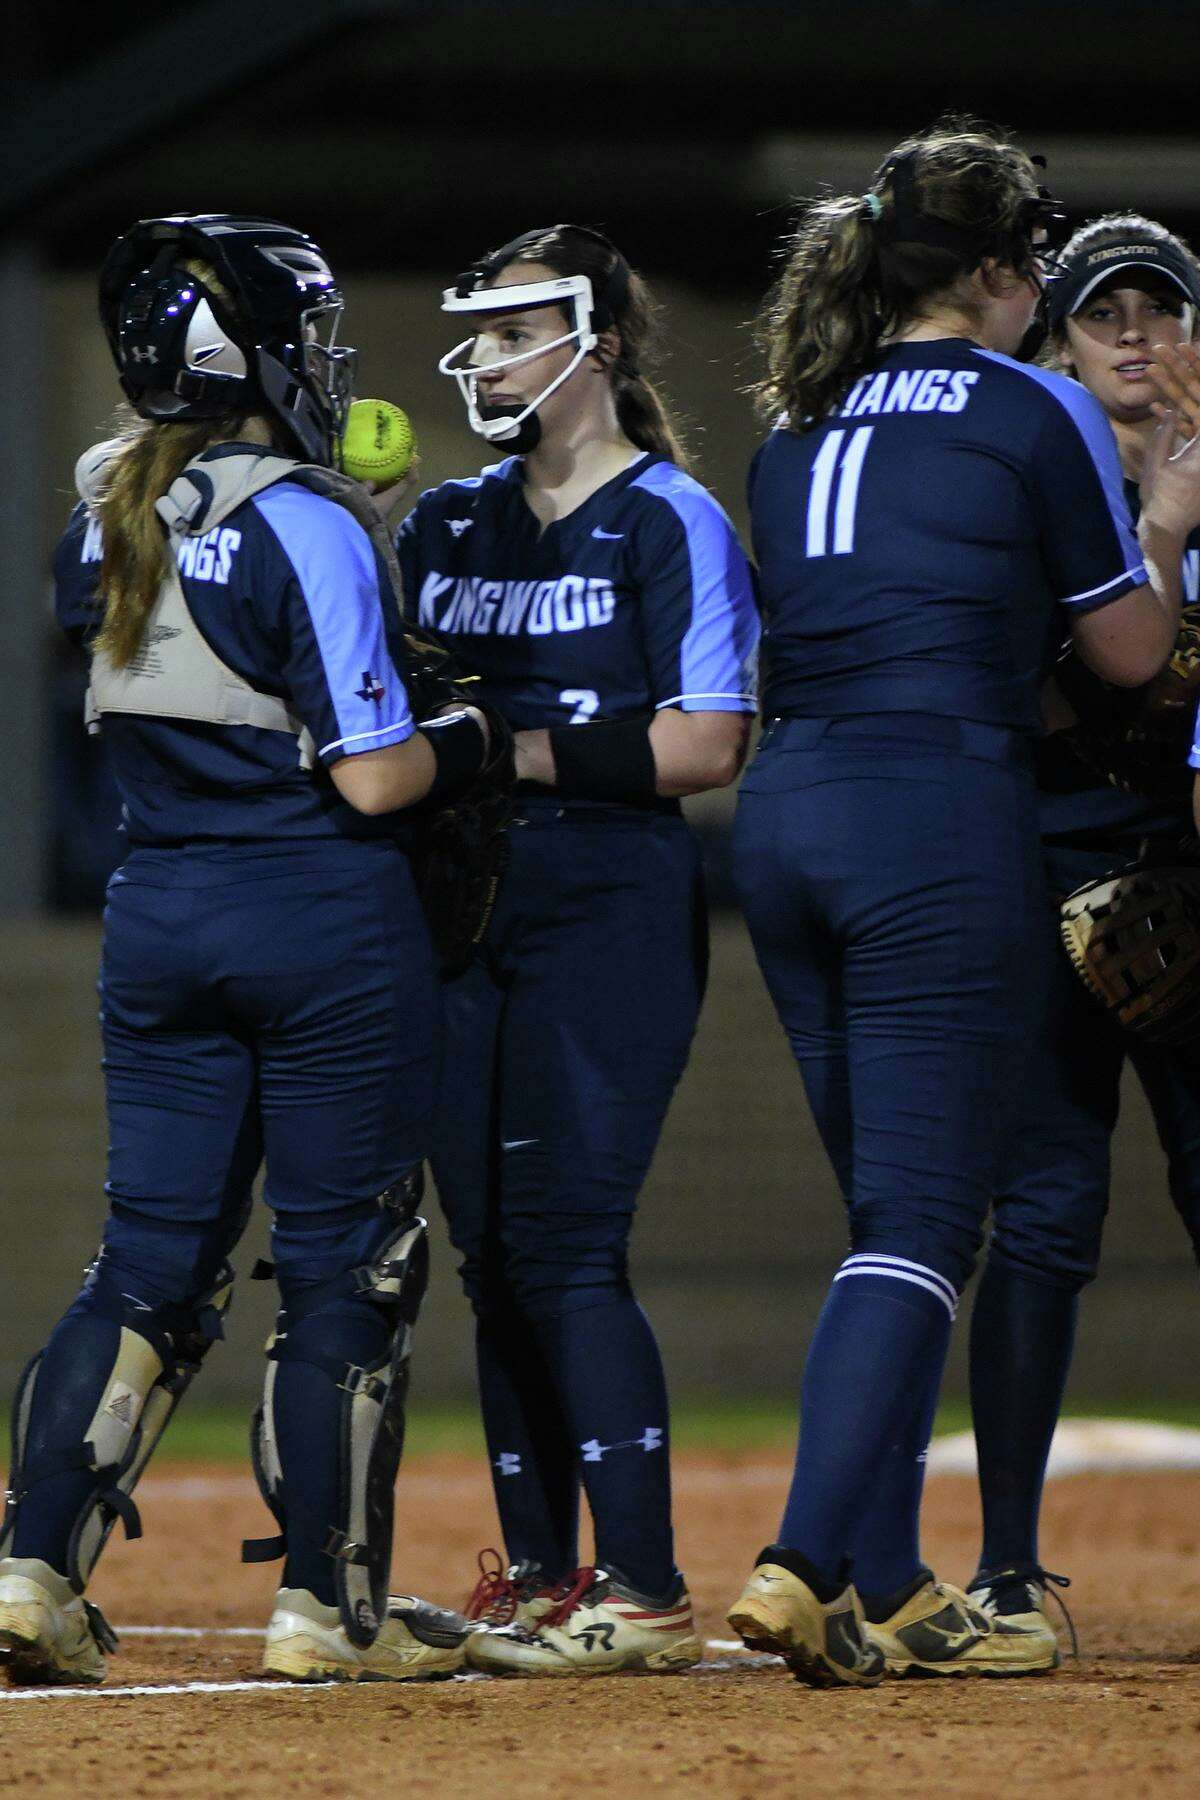 Kingwood catcher Taylor Vannett, from left, pitcher Mary Martinez, 1st baseman Bri Windham, and 3rd baseman Maddie Brewer get ready to play defense against Summer Creek in the bottom of the 2nd inning of their District 22-6A matchup at SCHS on March 8, 2019.